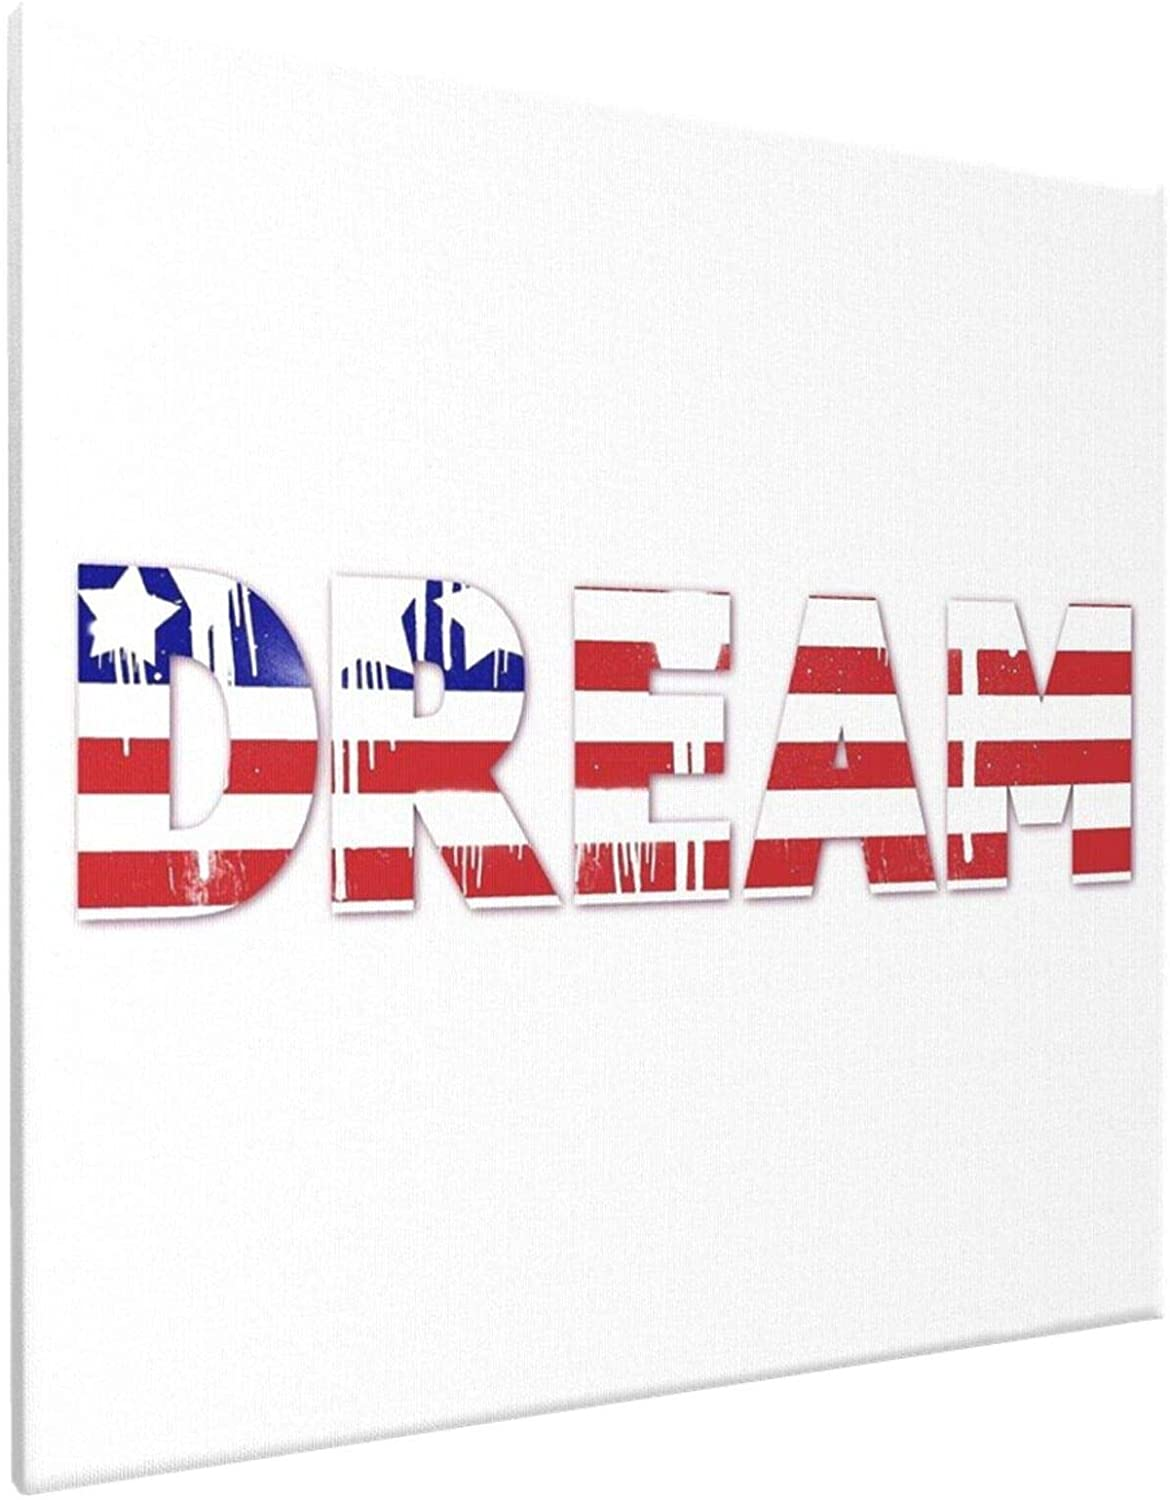 American Dream -£¨5£ Anime Living Room Bedroom Home Decoration Gift Fabric Wall Scroll Poster 16x16 Inch